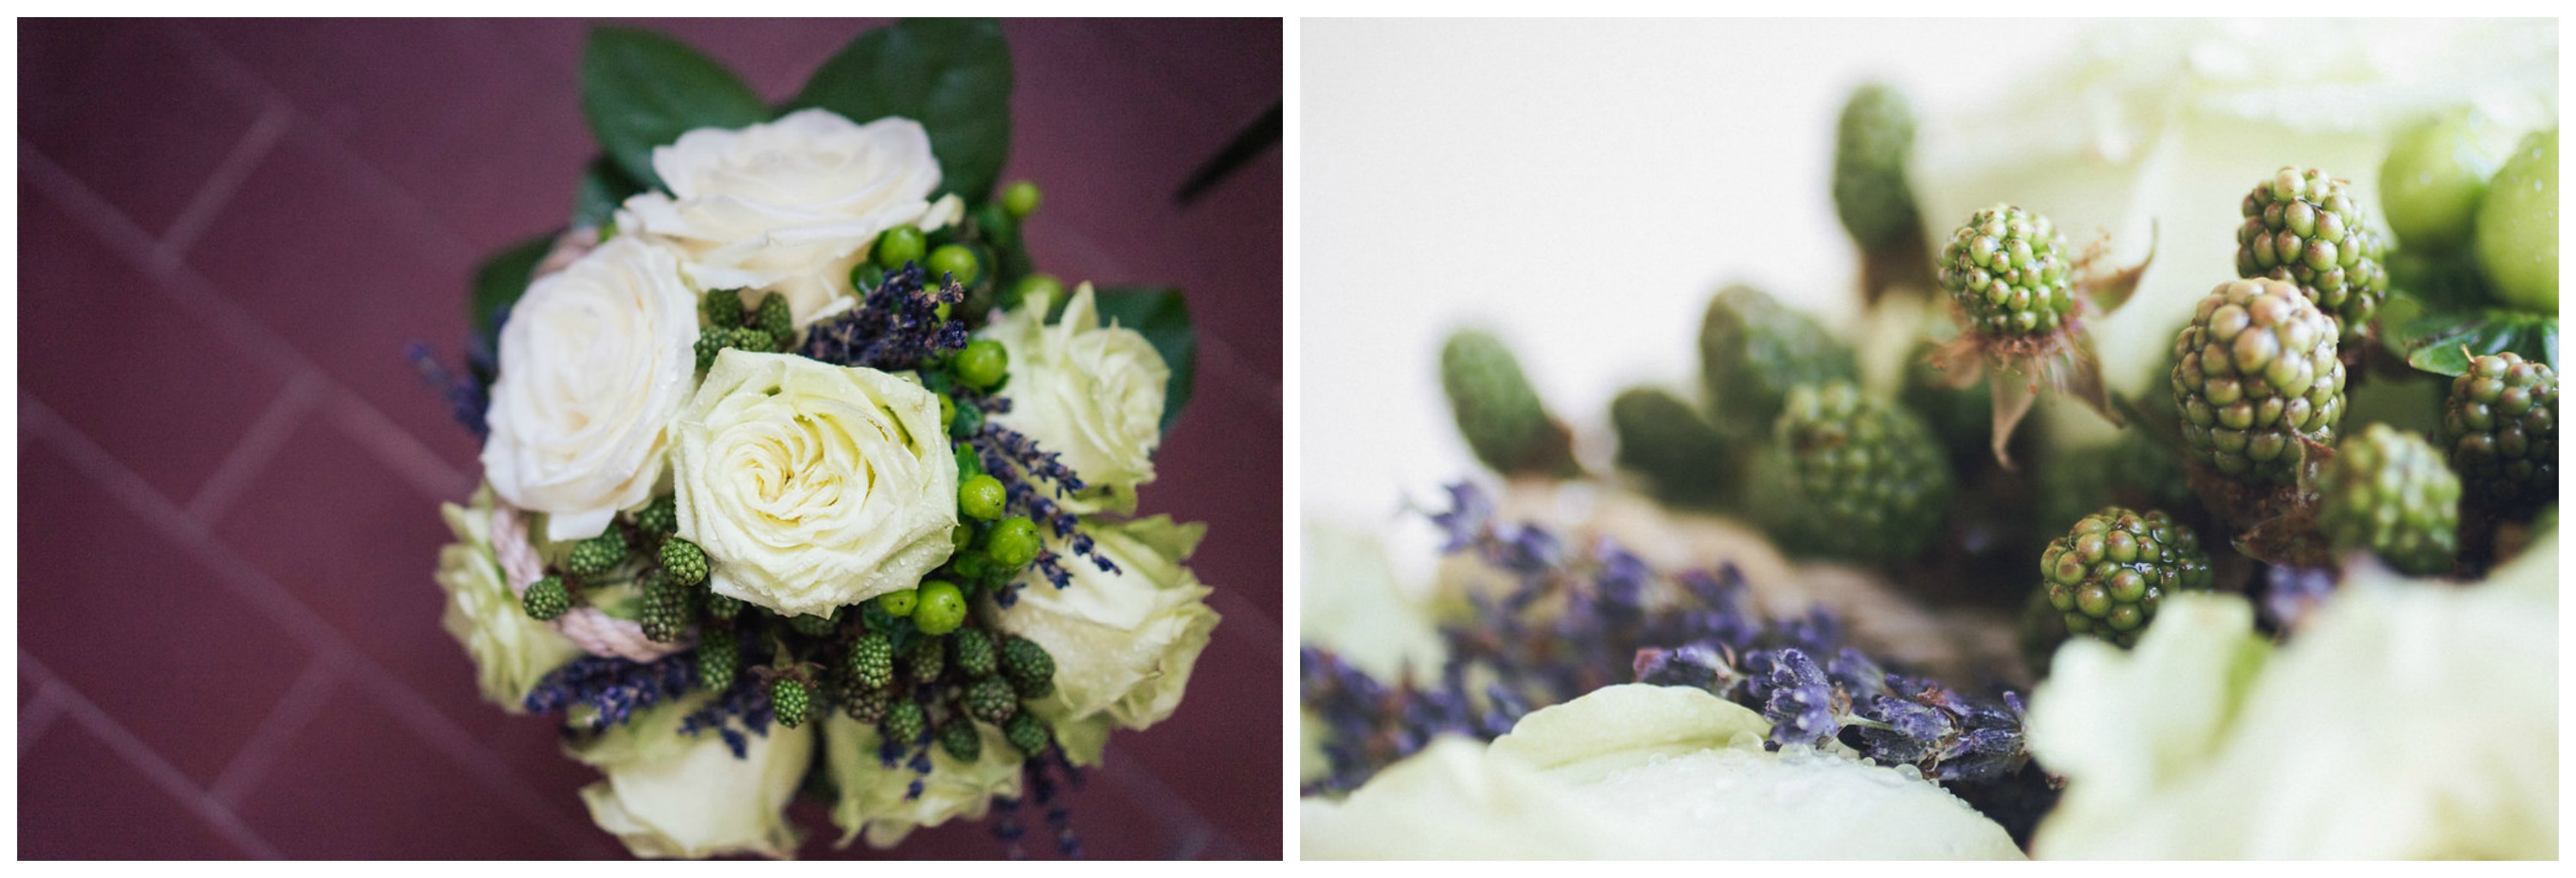 4-bouquet-with-lavender